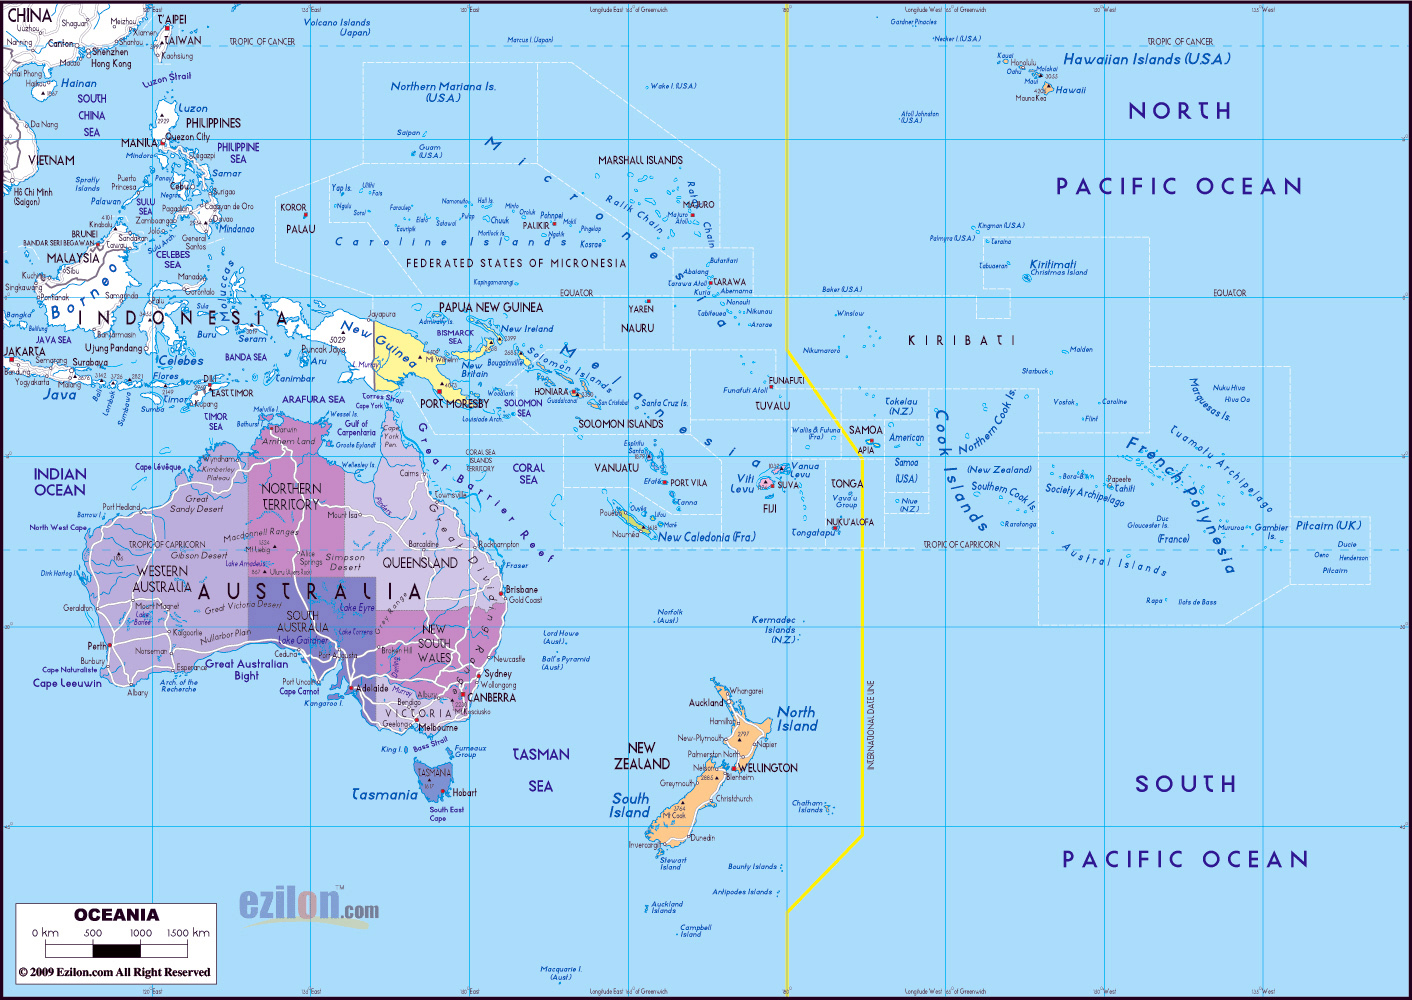 Australia Map With Cities.Large Detailed Political And Administrative Map Of Australia And